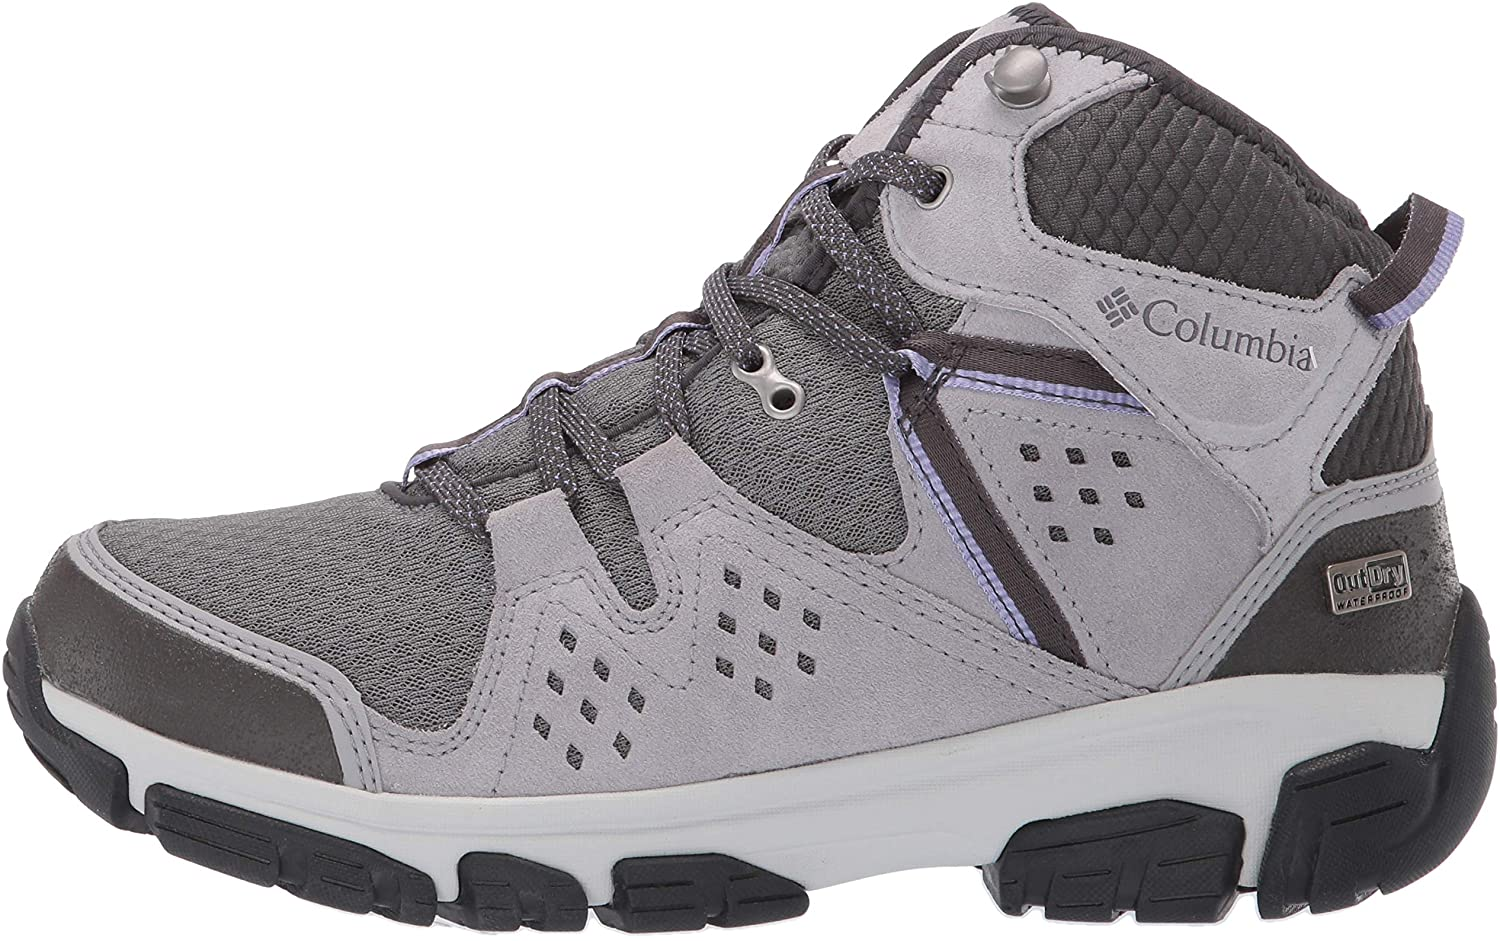 Waterproof /& Breathable Columbia Womens Isoterra Mid Outdry Boot